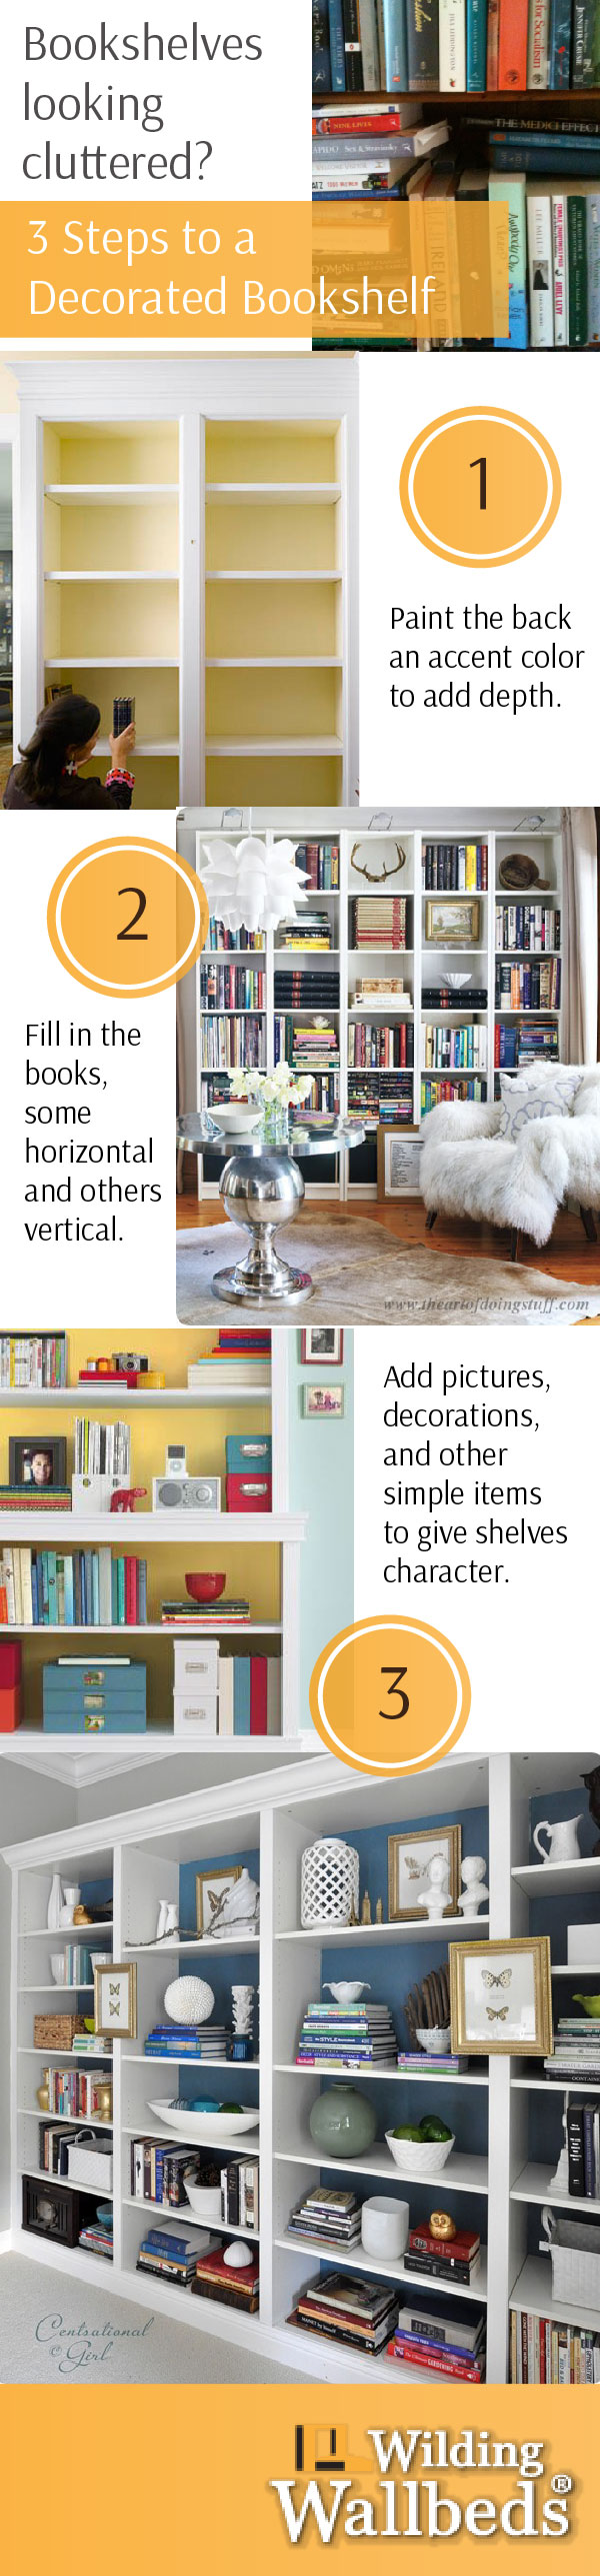 3 Steps to a Decorated Bookshelf